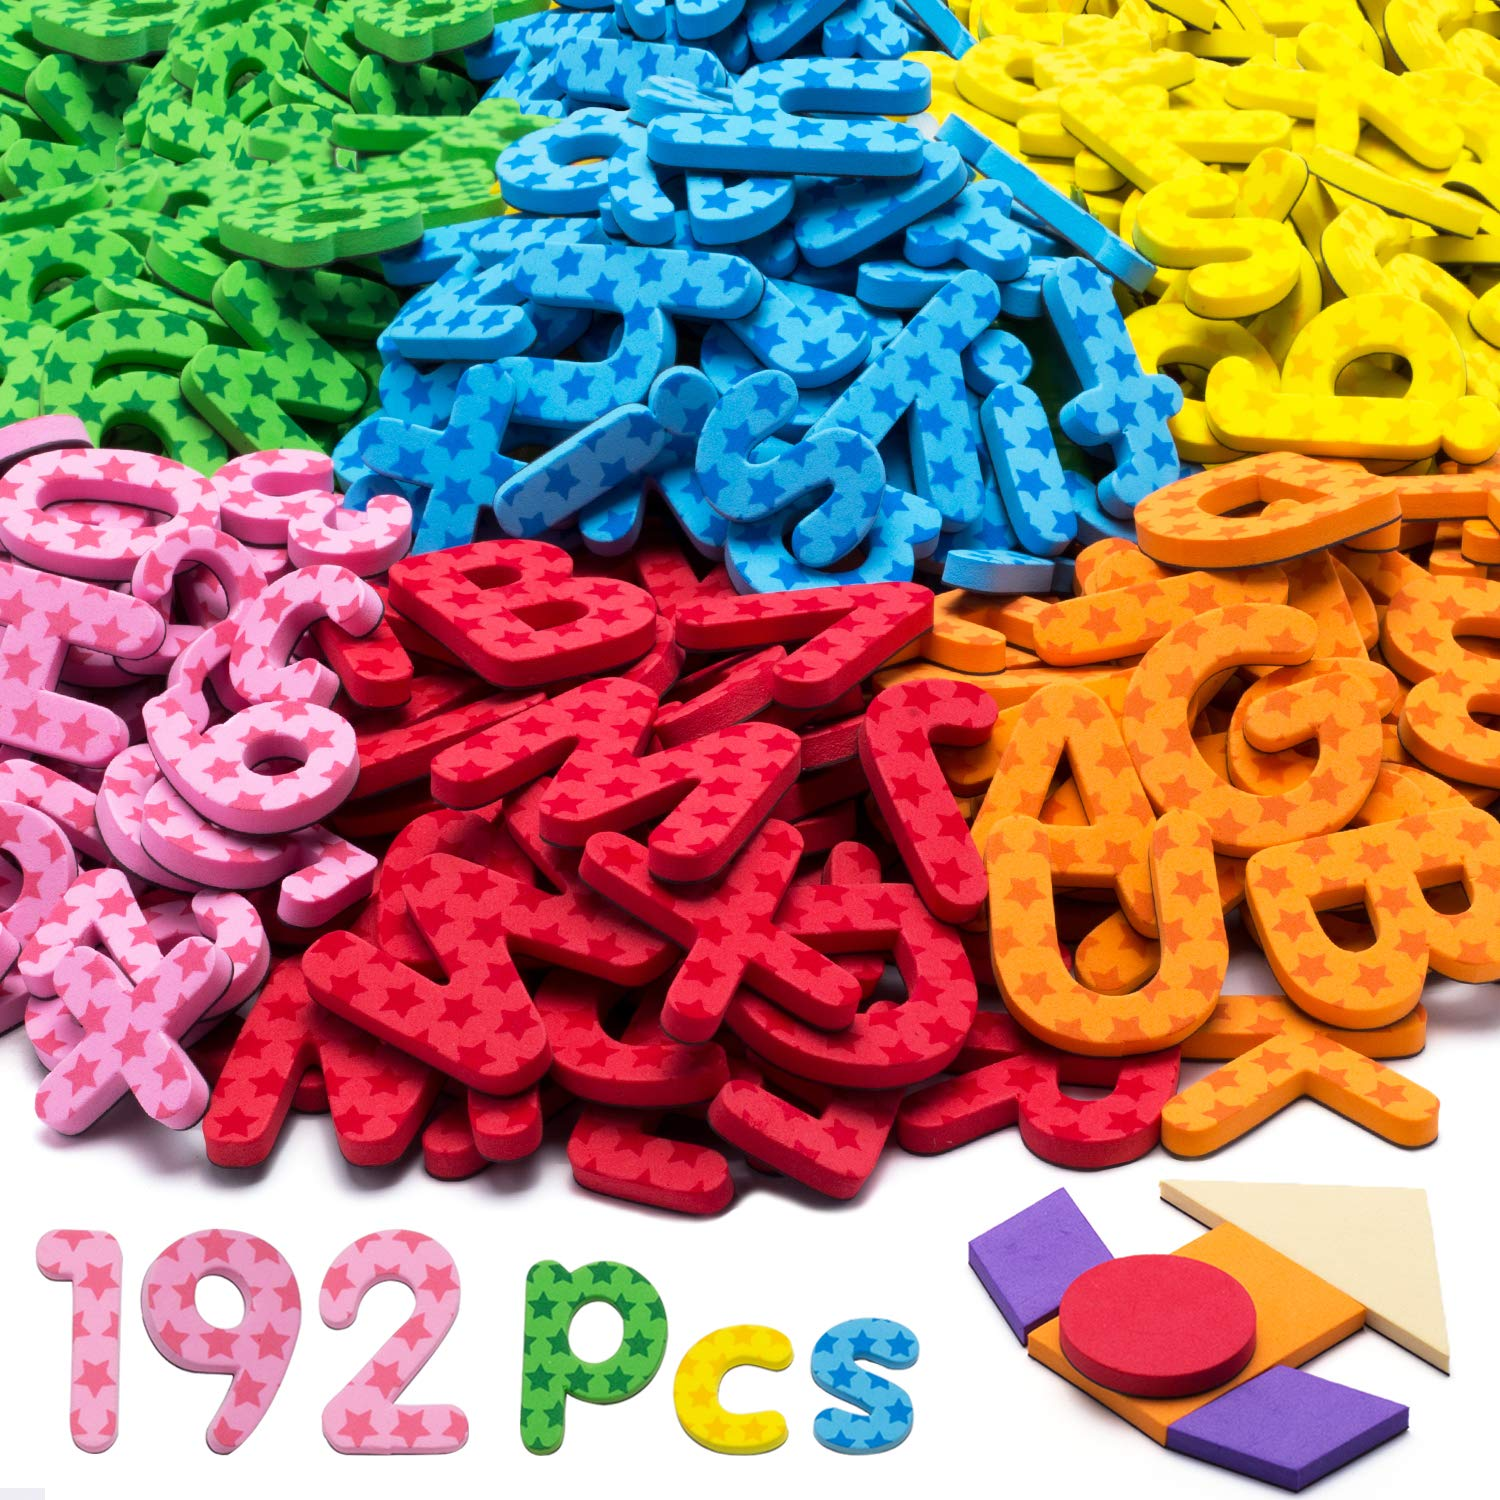 192 Pcs Magnetic Letters Numbers 9 Color(With Pattern Blocks,Symbols) Foam Set, Alphabet Magnets Gift for Preschool Kids Children Toddler Educational Fridge Refrigerator Toy, Classroom School Learning by Punertoy